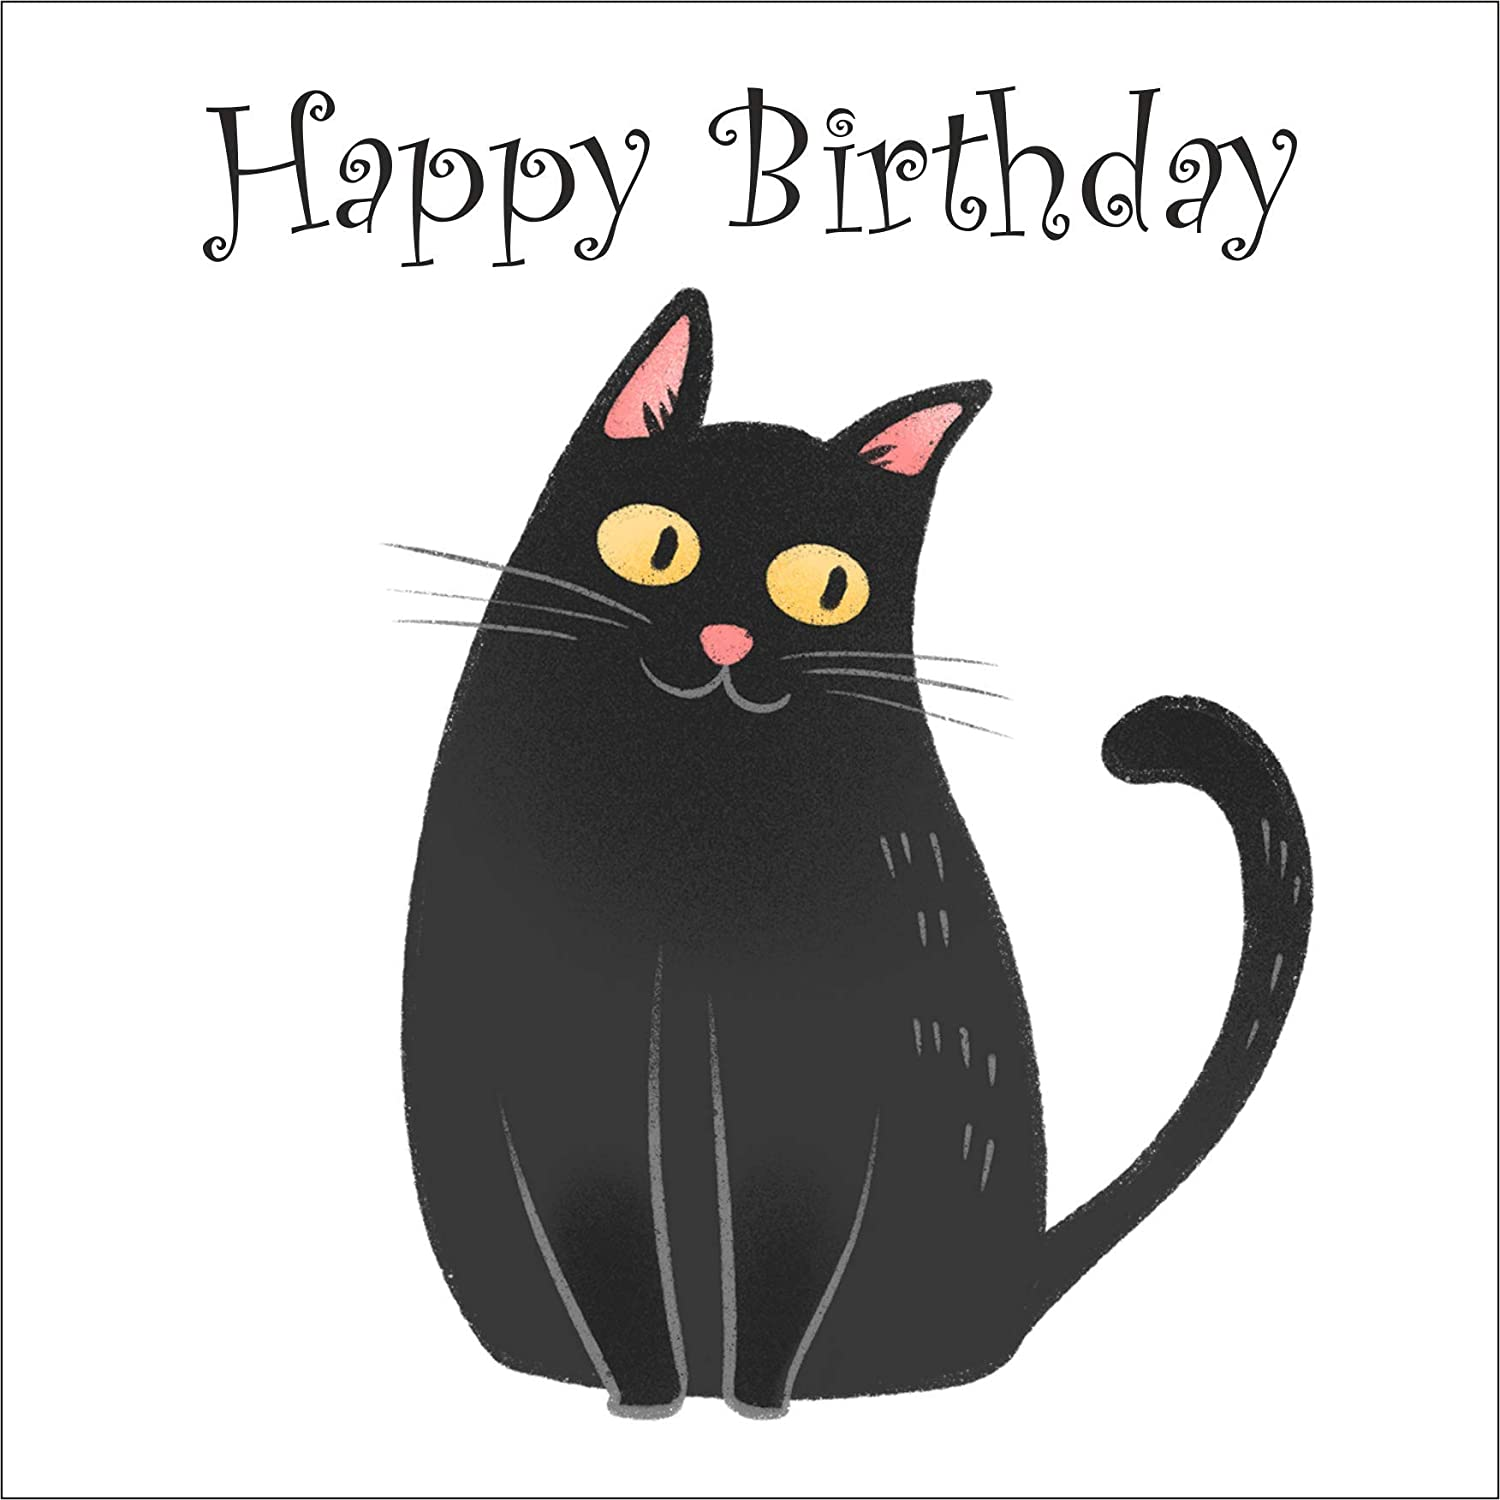 Cartoon Black Cat Birthday Card Amazon Co Uk Handmade Well you're in luck, because here. cartoon black cat birthday card